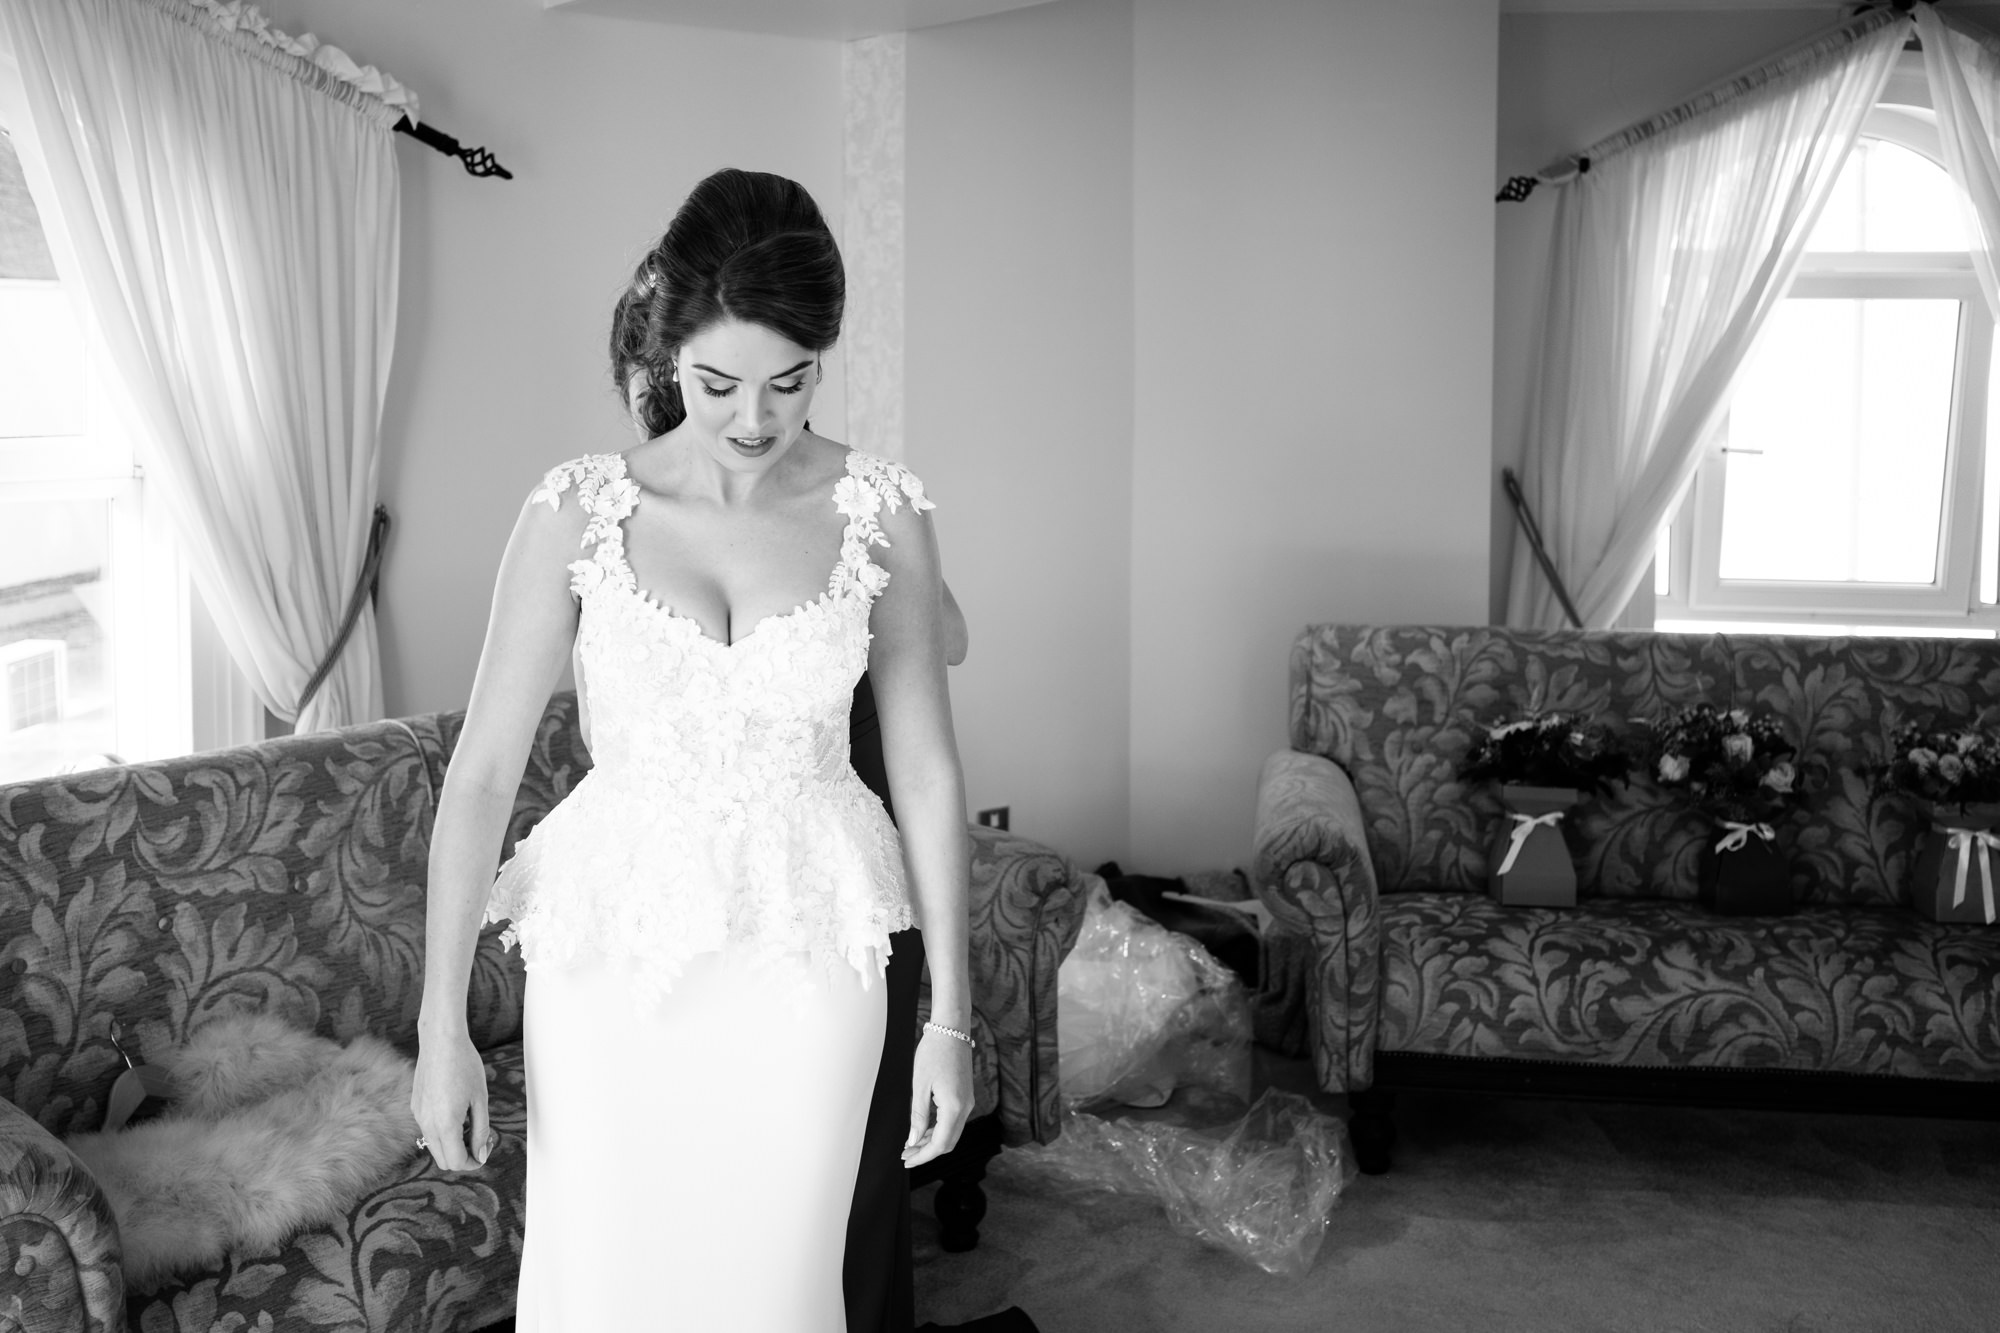 bride-getting-into-wedding-dress